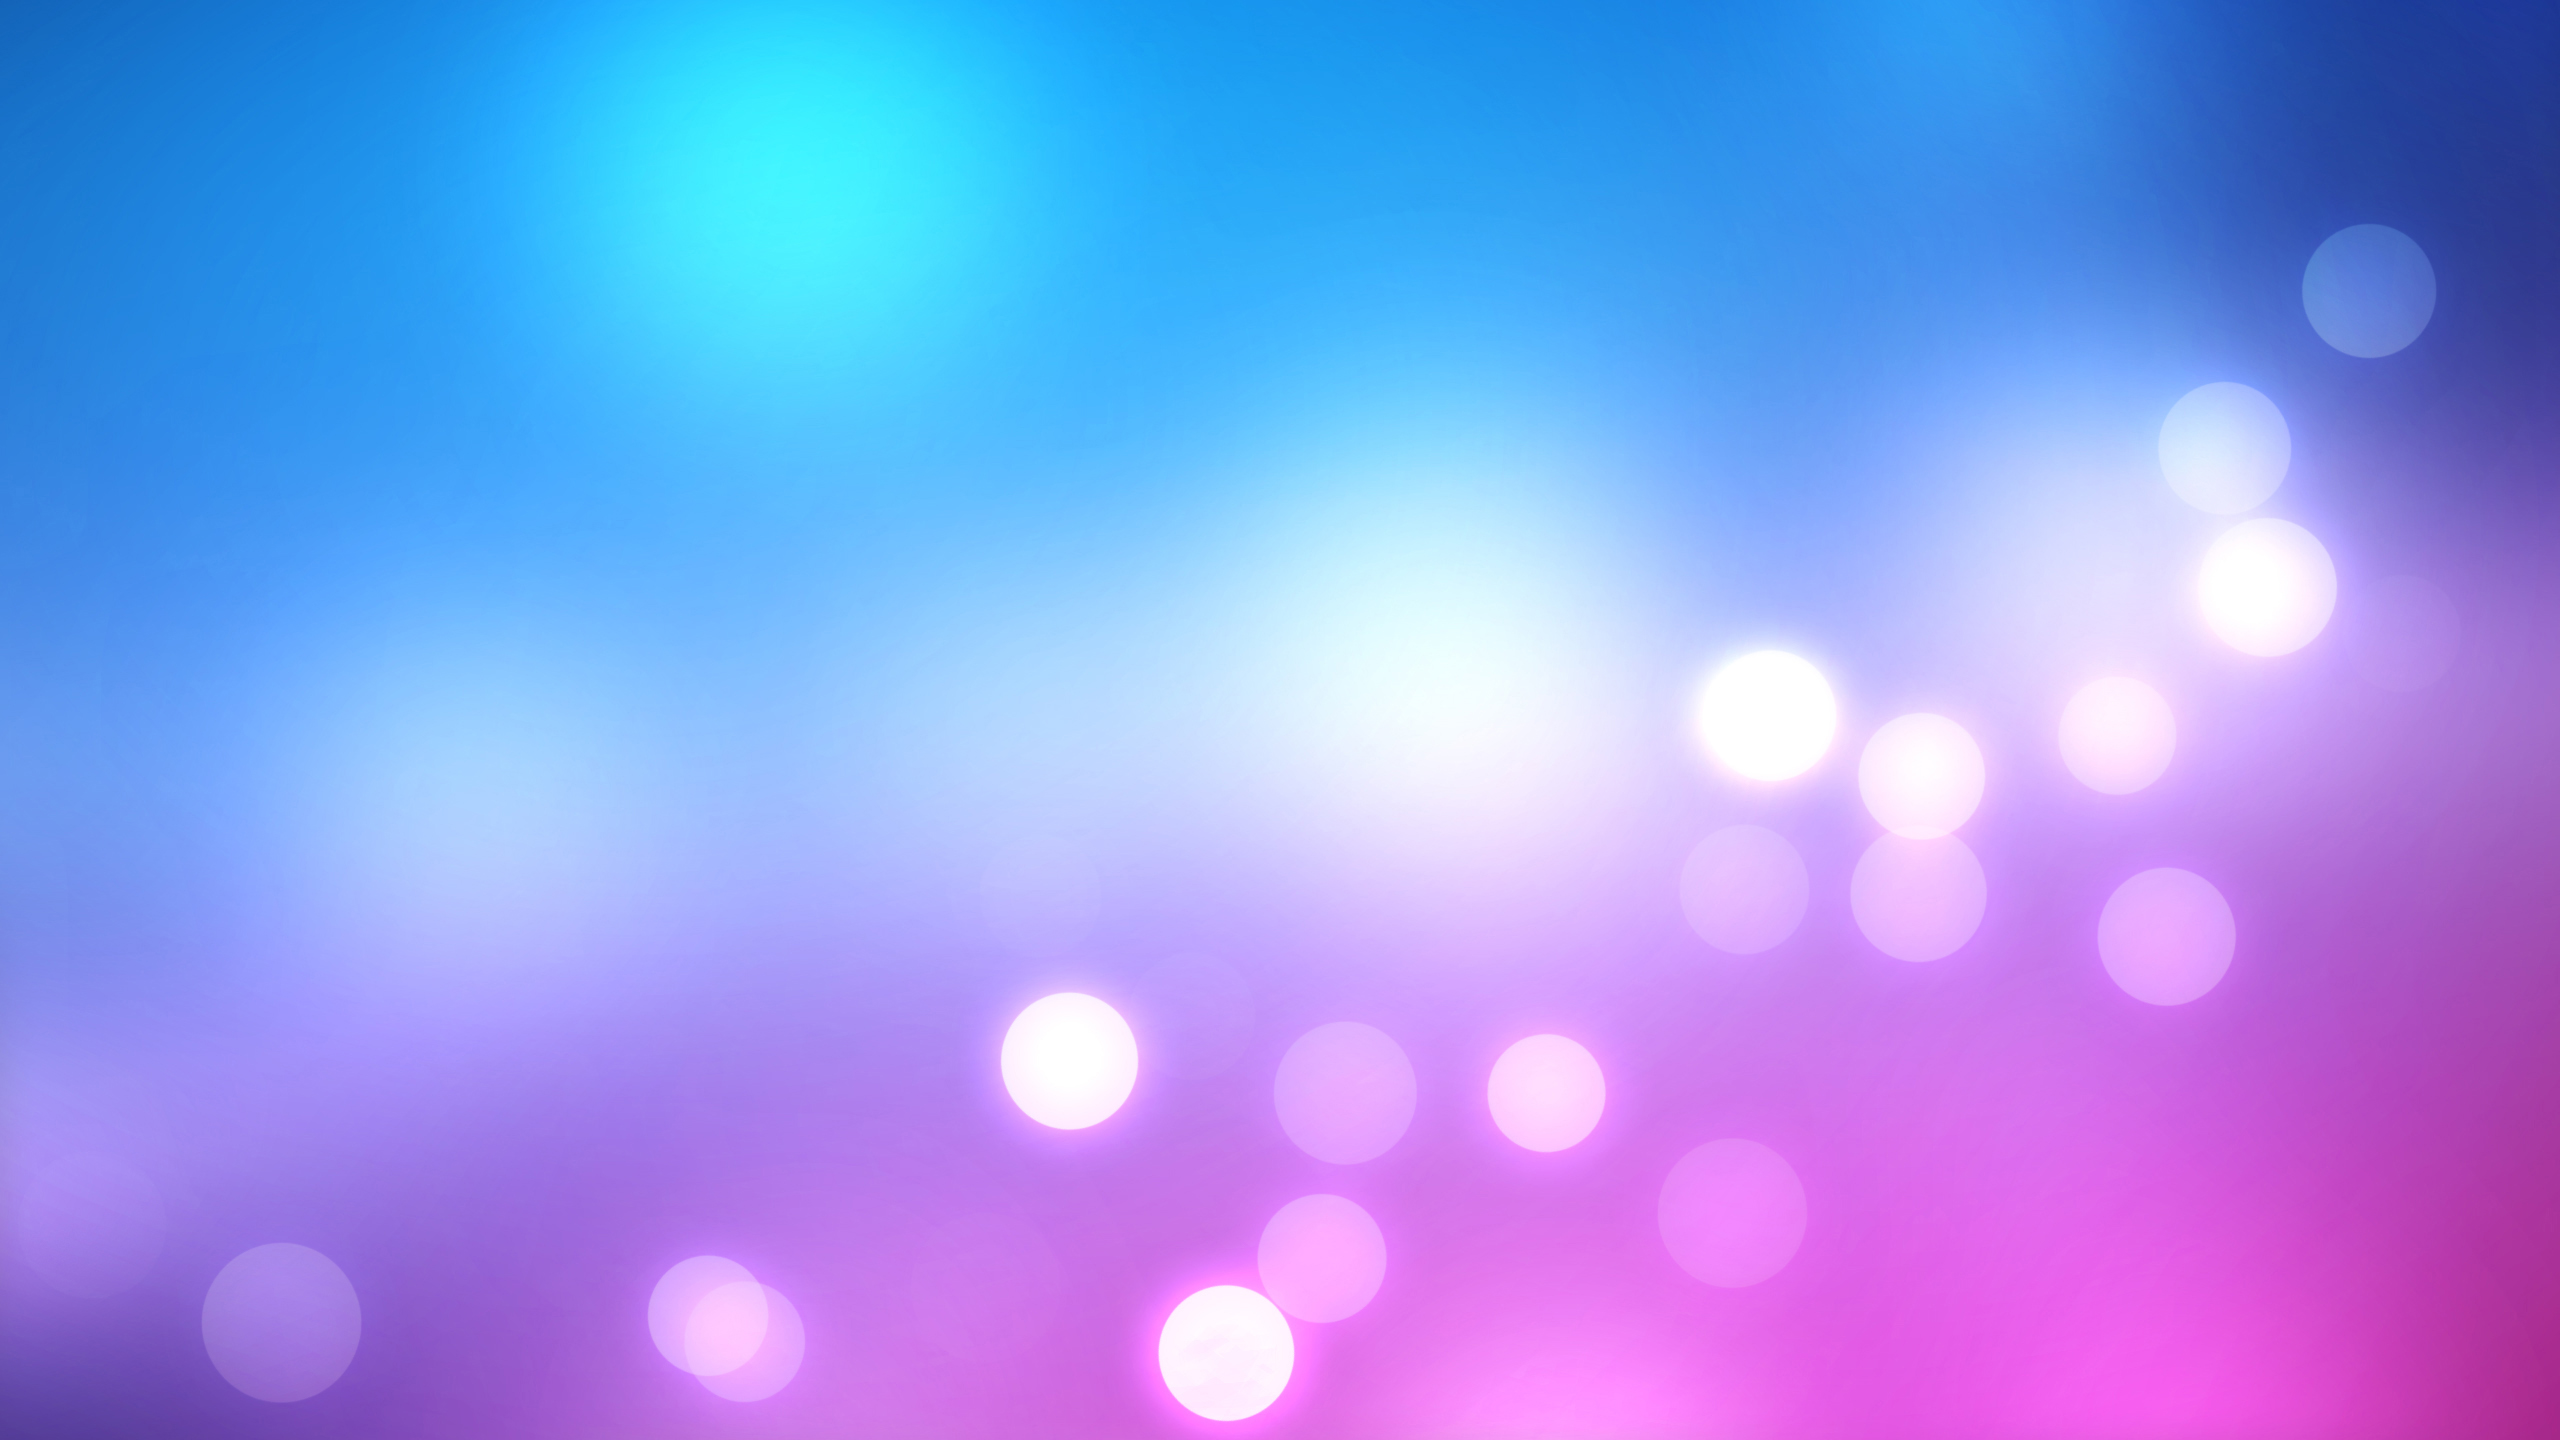 Purple And Blue Wallpapers Images amp Pictures   Becuo 2560x1440